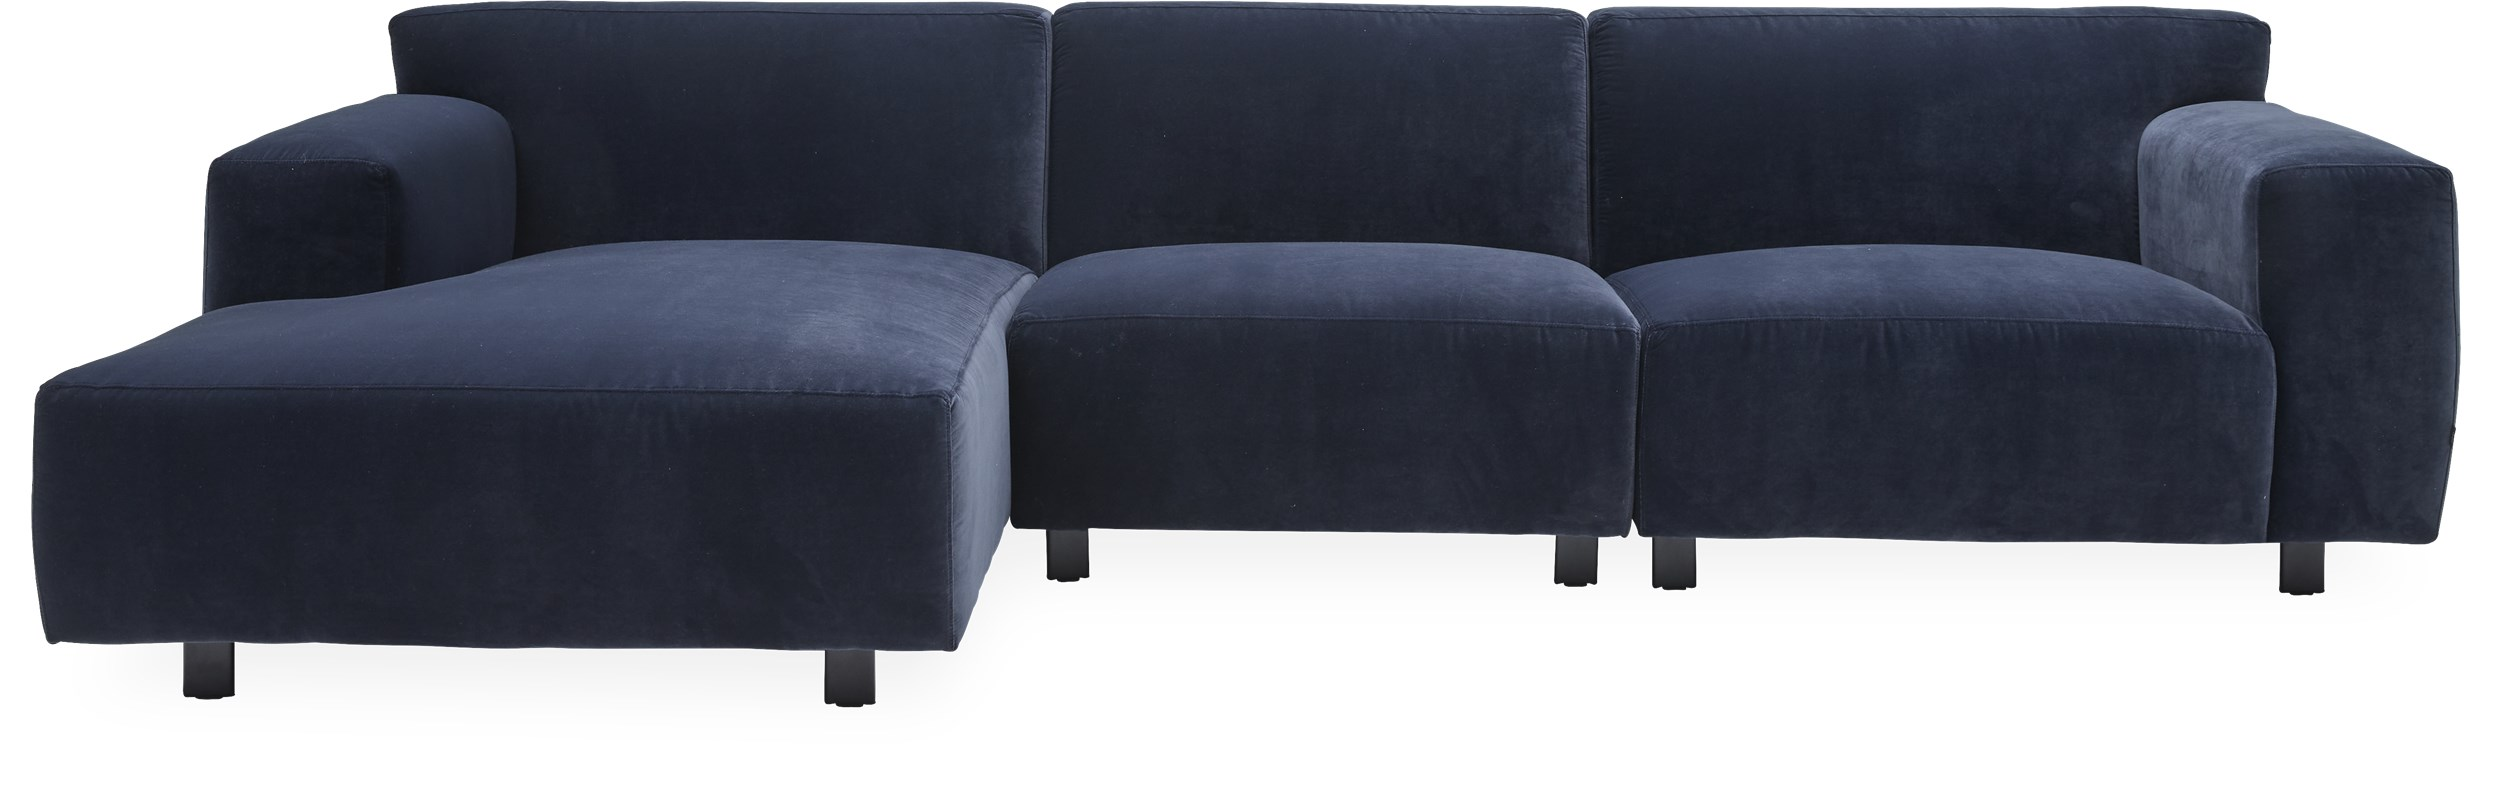 Vesta Sofa med chaiselong - Sofa med chaiselong